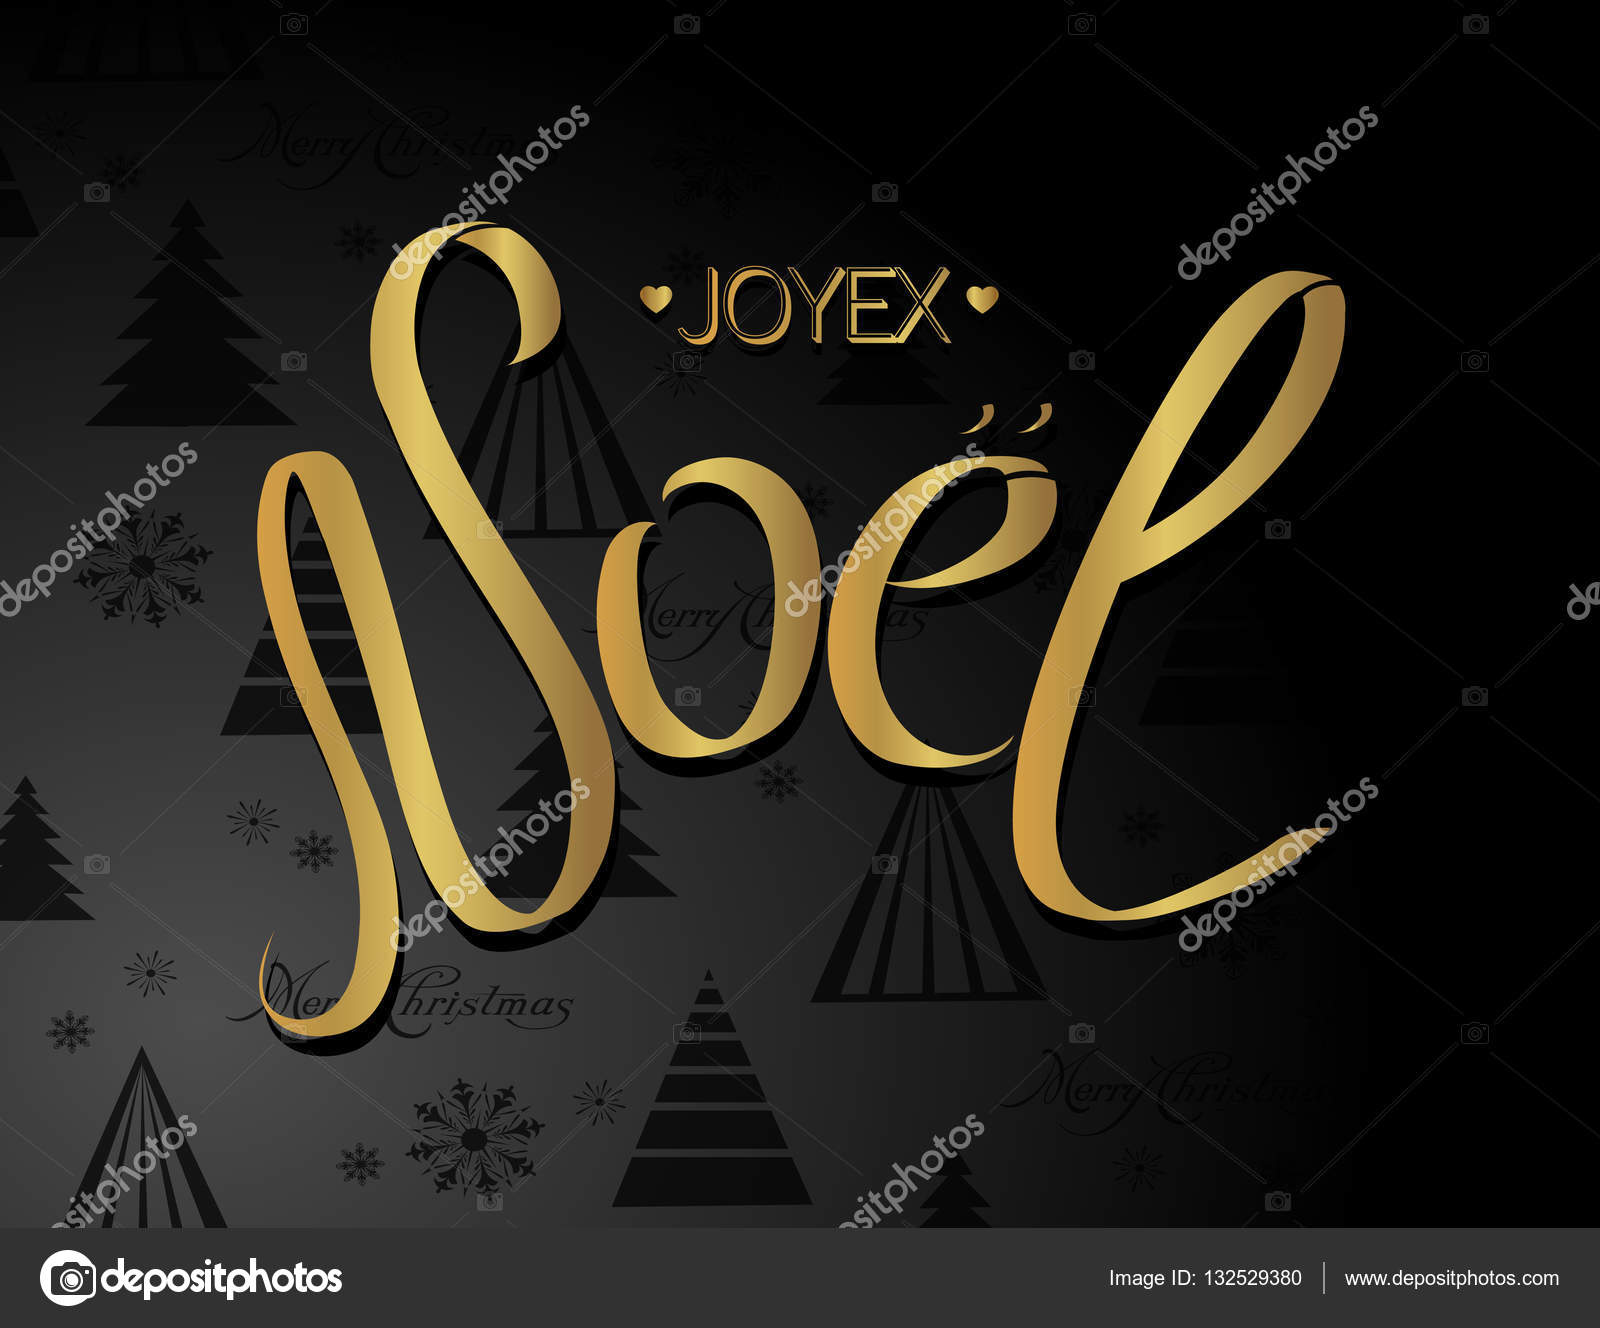 Merry christmas card template with greetings in french language merry christmas card template with greetings in french language joyeux noel noel calligraphic lettering m4hsunfo